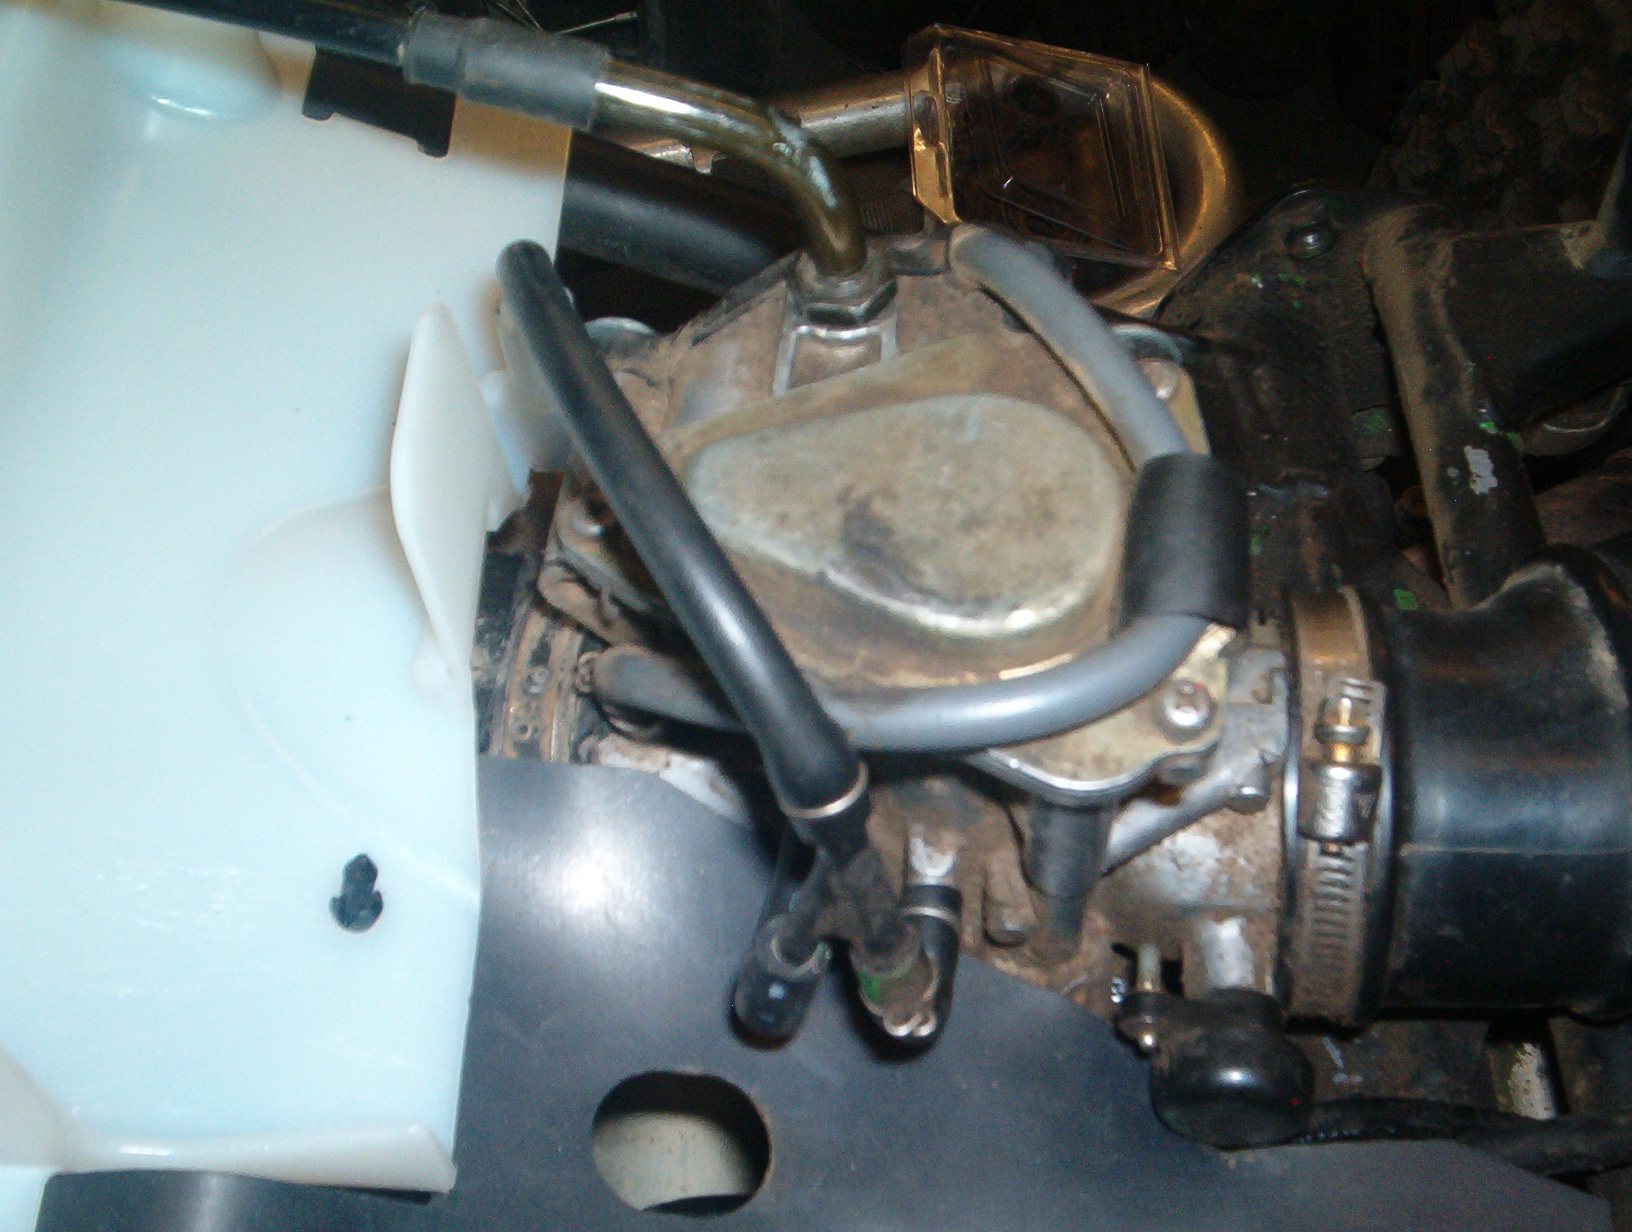 2001 400ex Broke Tubes On Carb Honda Trx Atv Forum